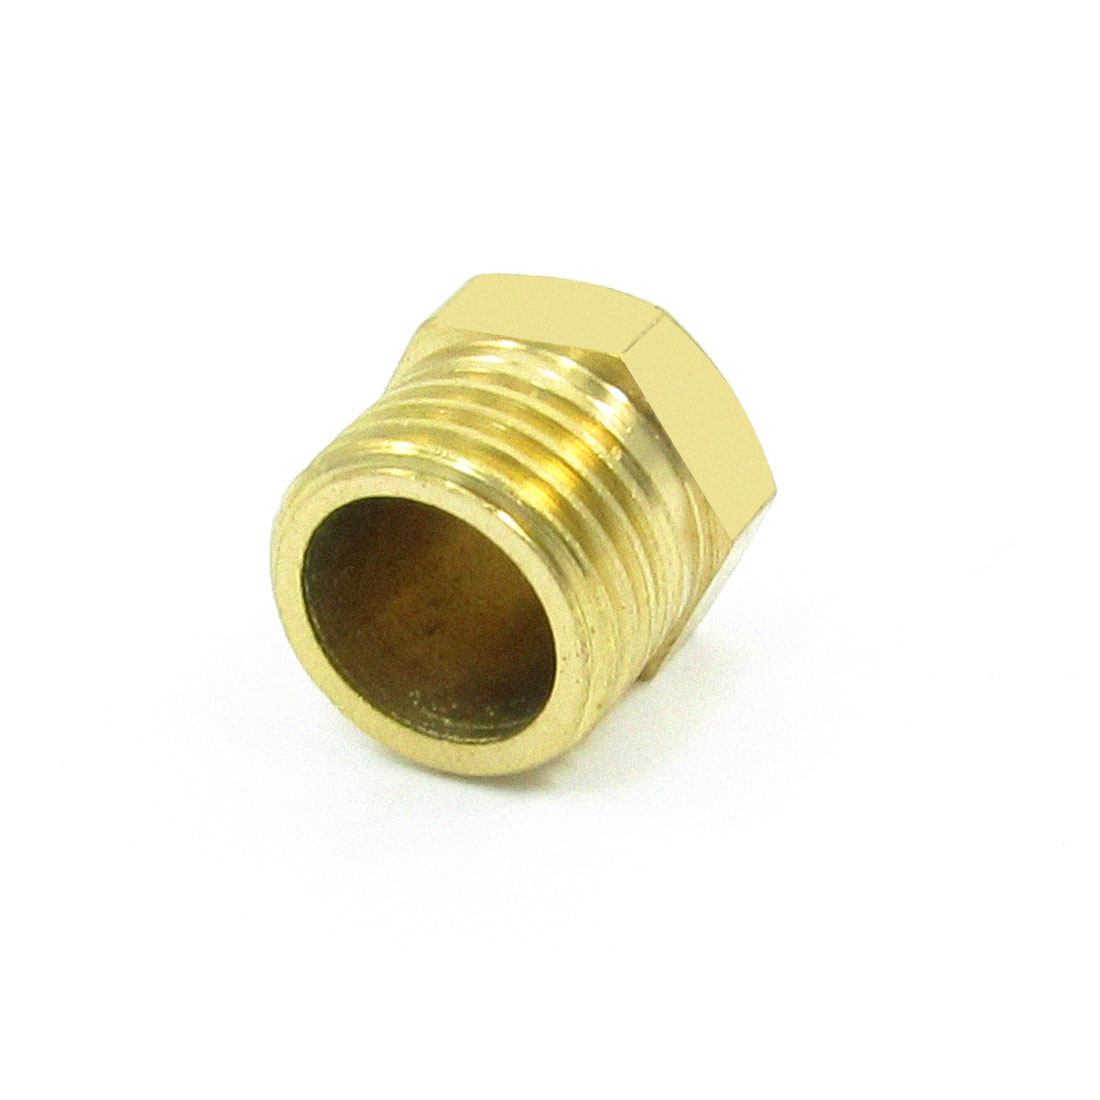 "1/4"" PT Threaded Diameter Brass Internal Hex Head Pipe Connector Gold Tone"